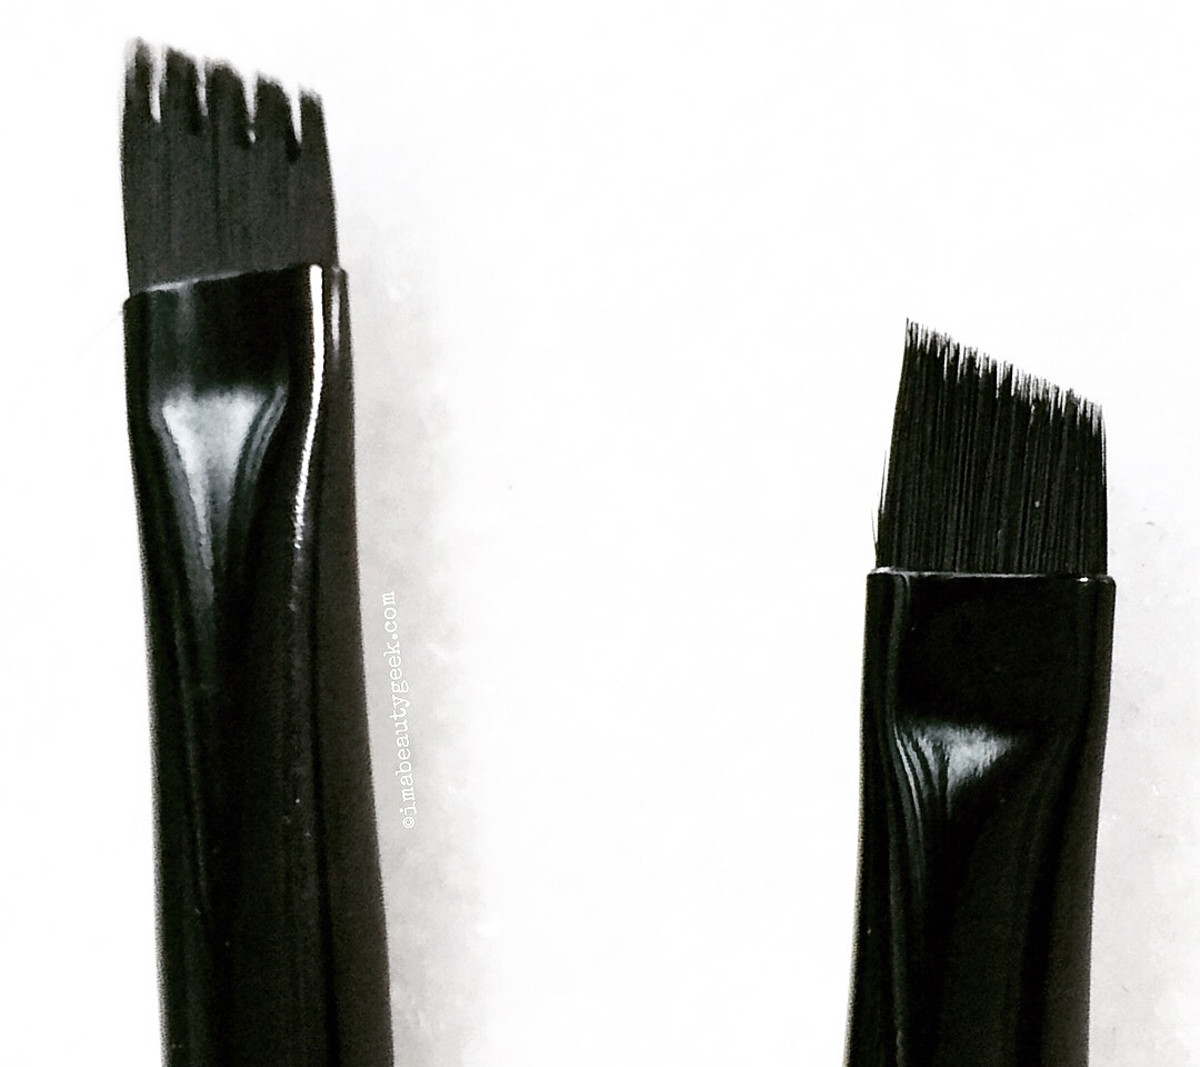 Kat Von D brow brushes: #75 Powder Brow Brush (left) and #70 Pomade Brow Brush (right)